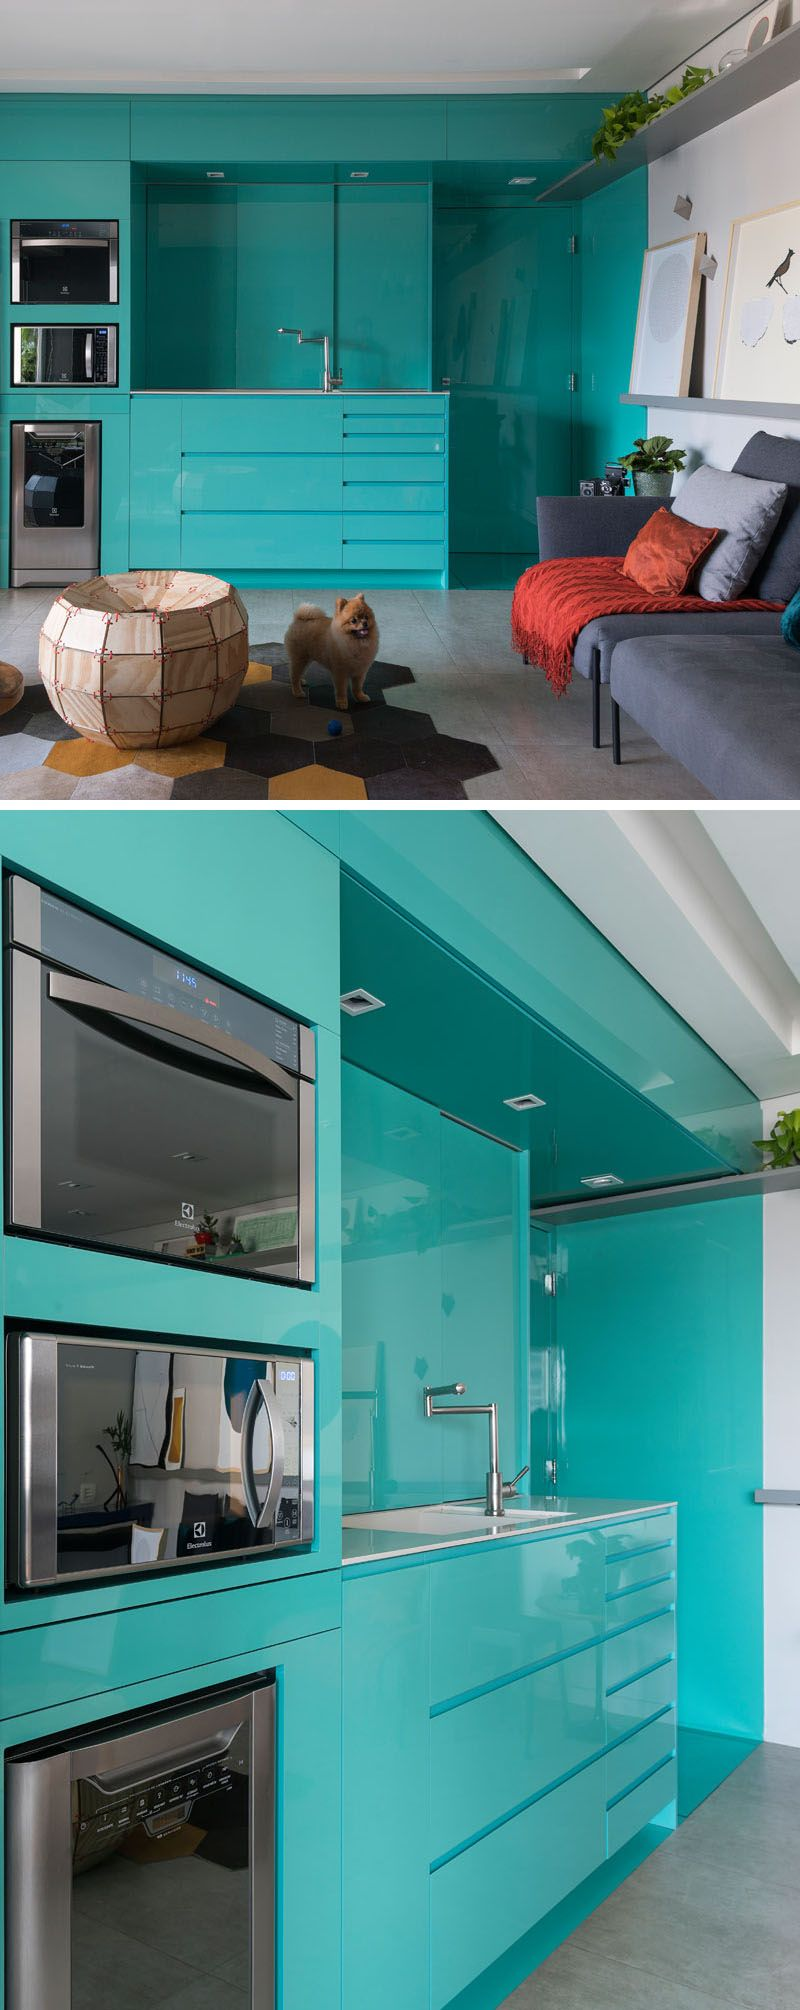 Before & After - A New Bright Blue Kitchen For This Small Apartment ...